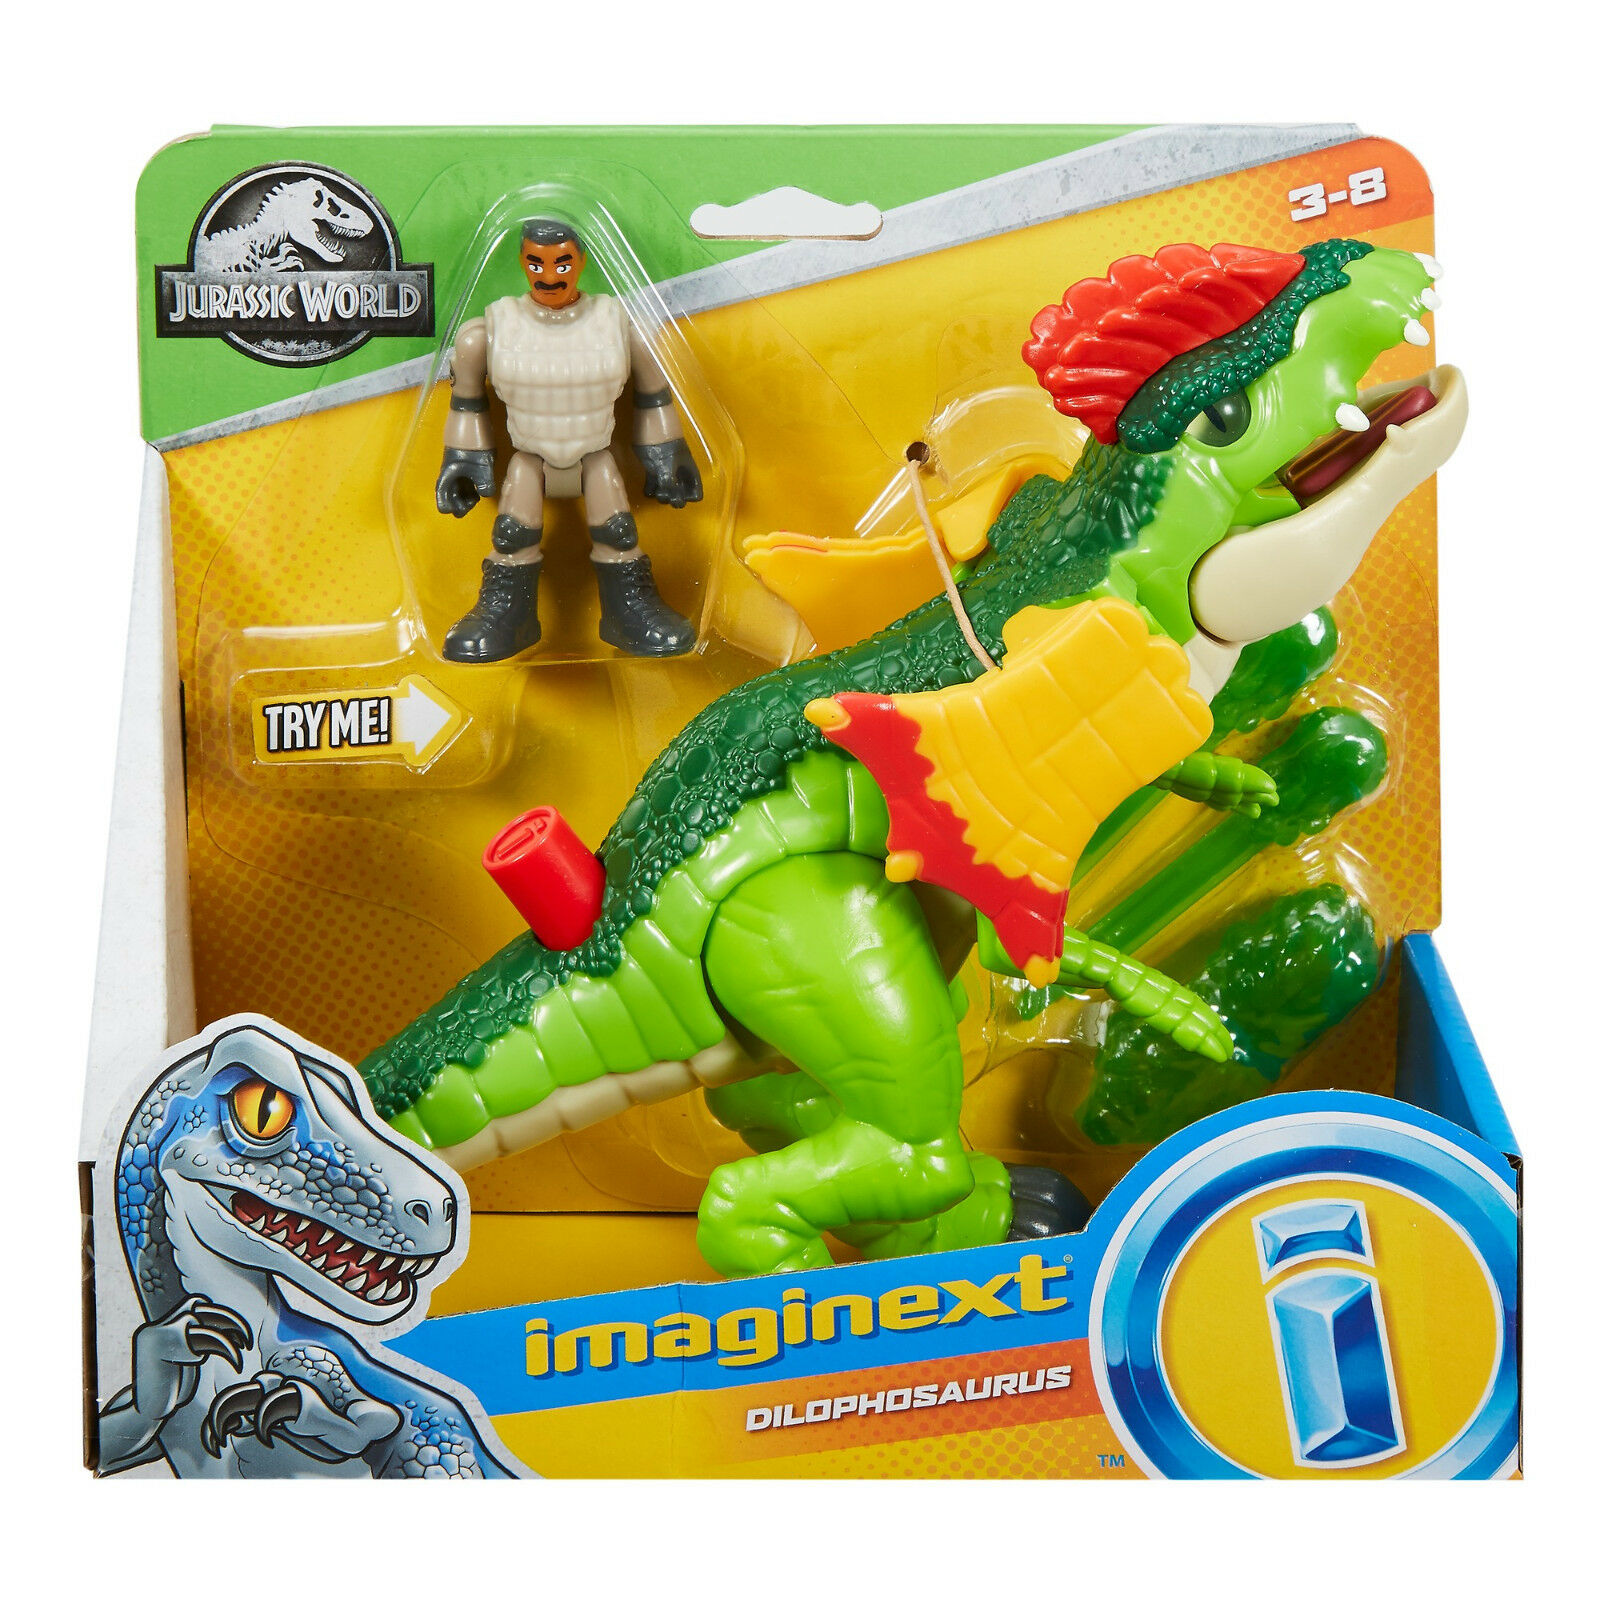 IMAGINEXT Jurassic World DILOPHOSAURUS AND AGENT FIGURE DINOSAUR SET PARK VENOM